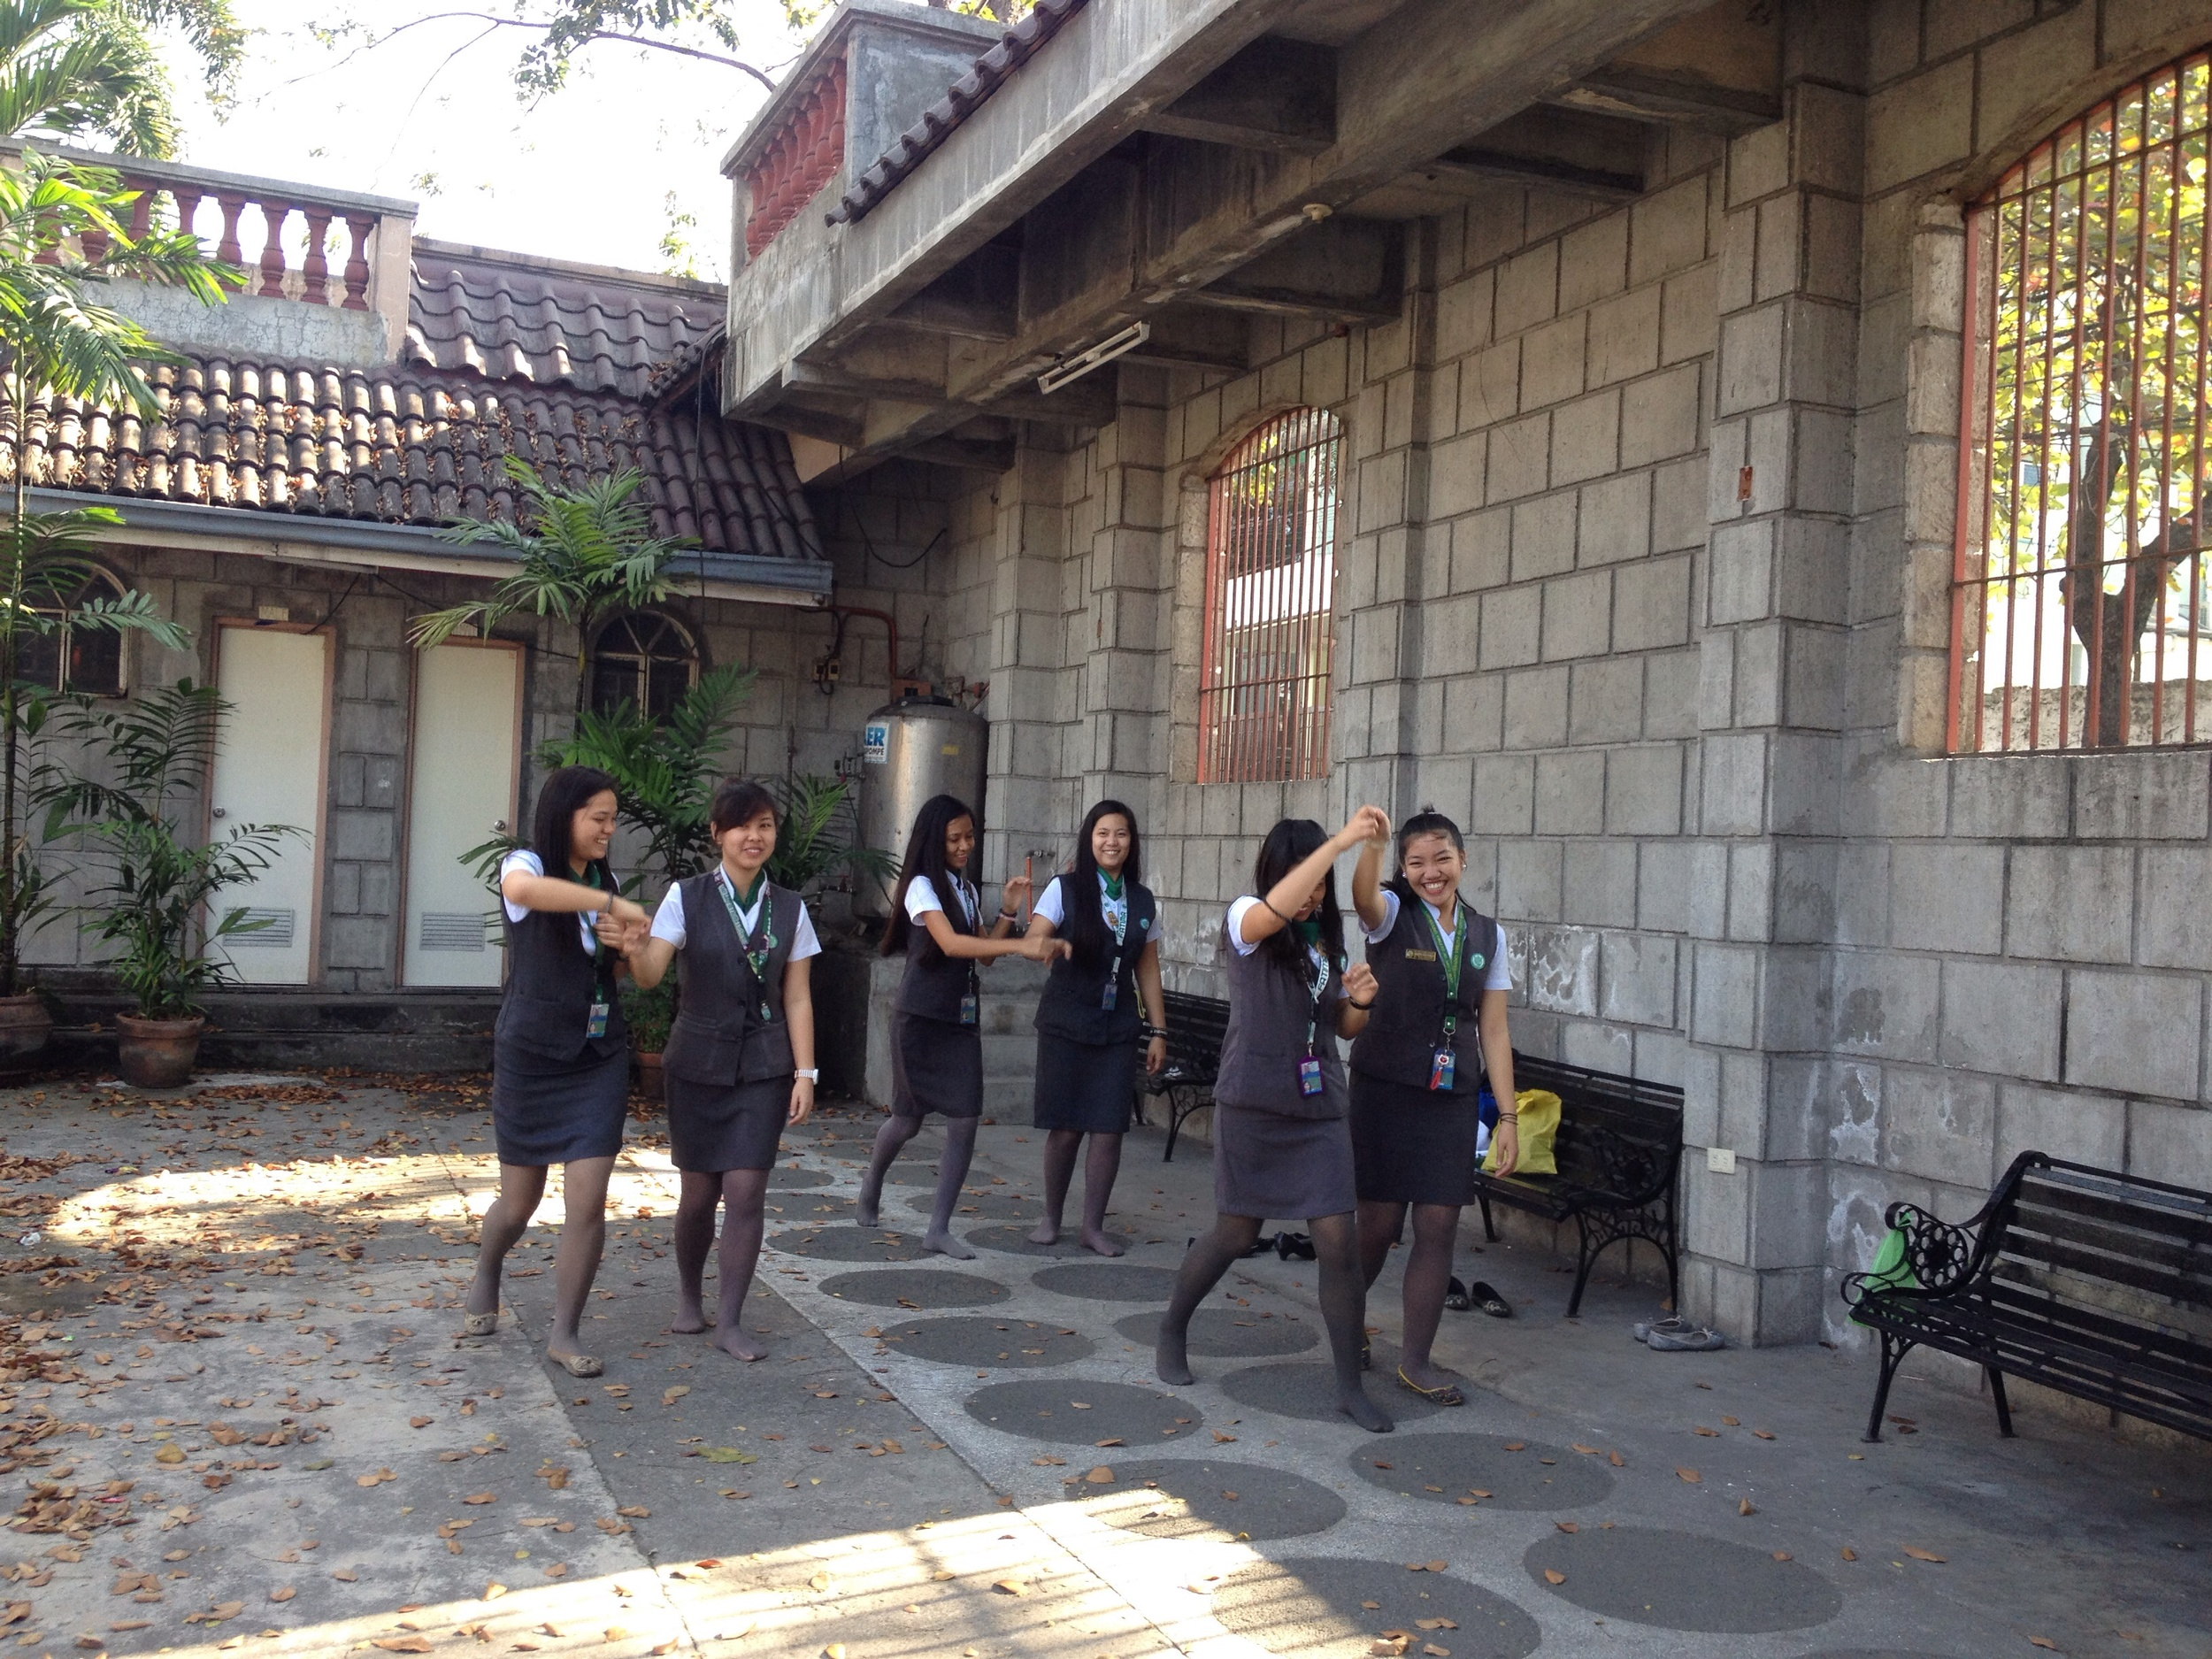 The courtyard outside the museum is used by local students to practice dance moves for a school event.